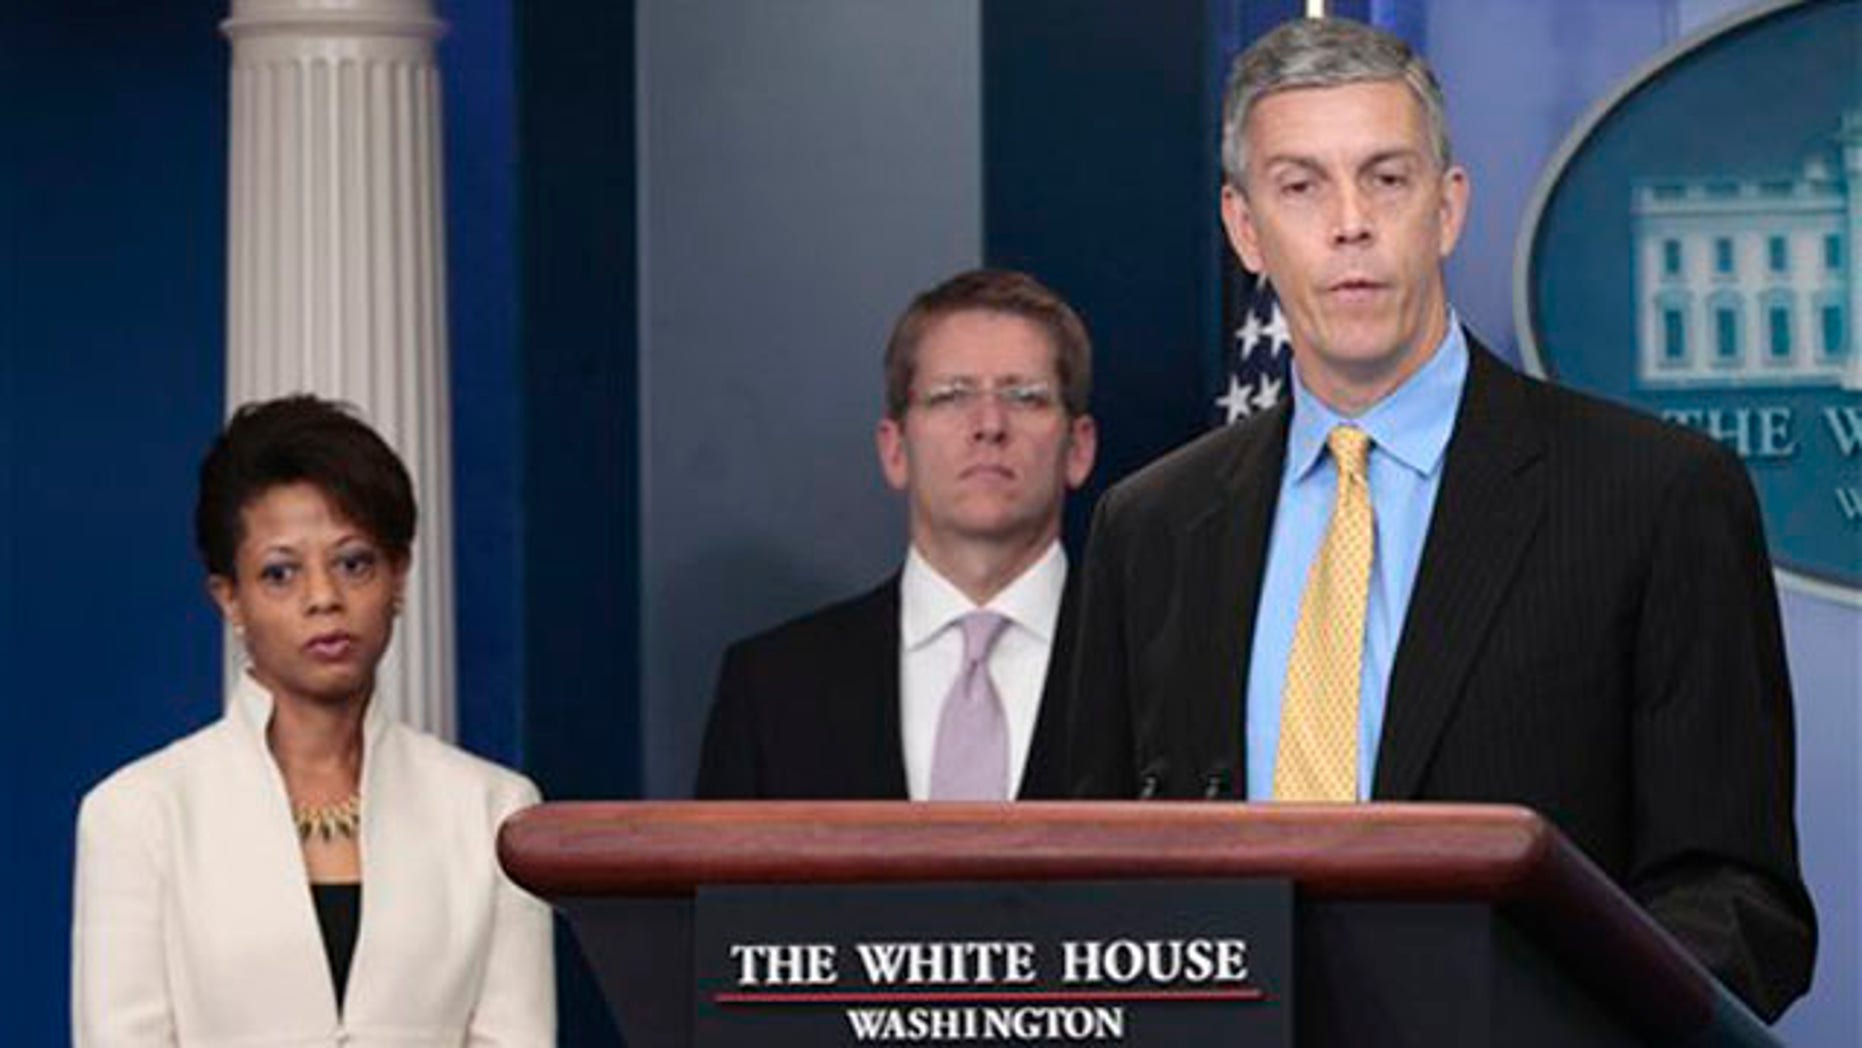 Education Secretary Arne Duncan, right, accompanied by White House Press Secretary Jay Carney, center, and Domestic Policy Council Director Melody Barnes, speaks at the White House in Washington Aug. 8.